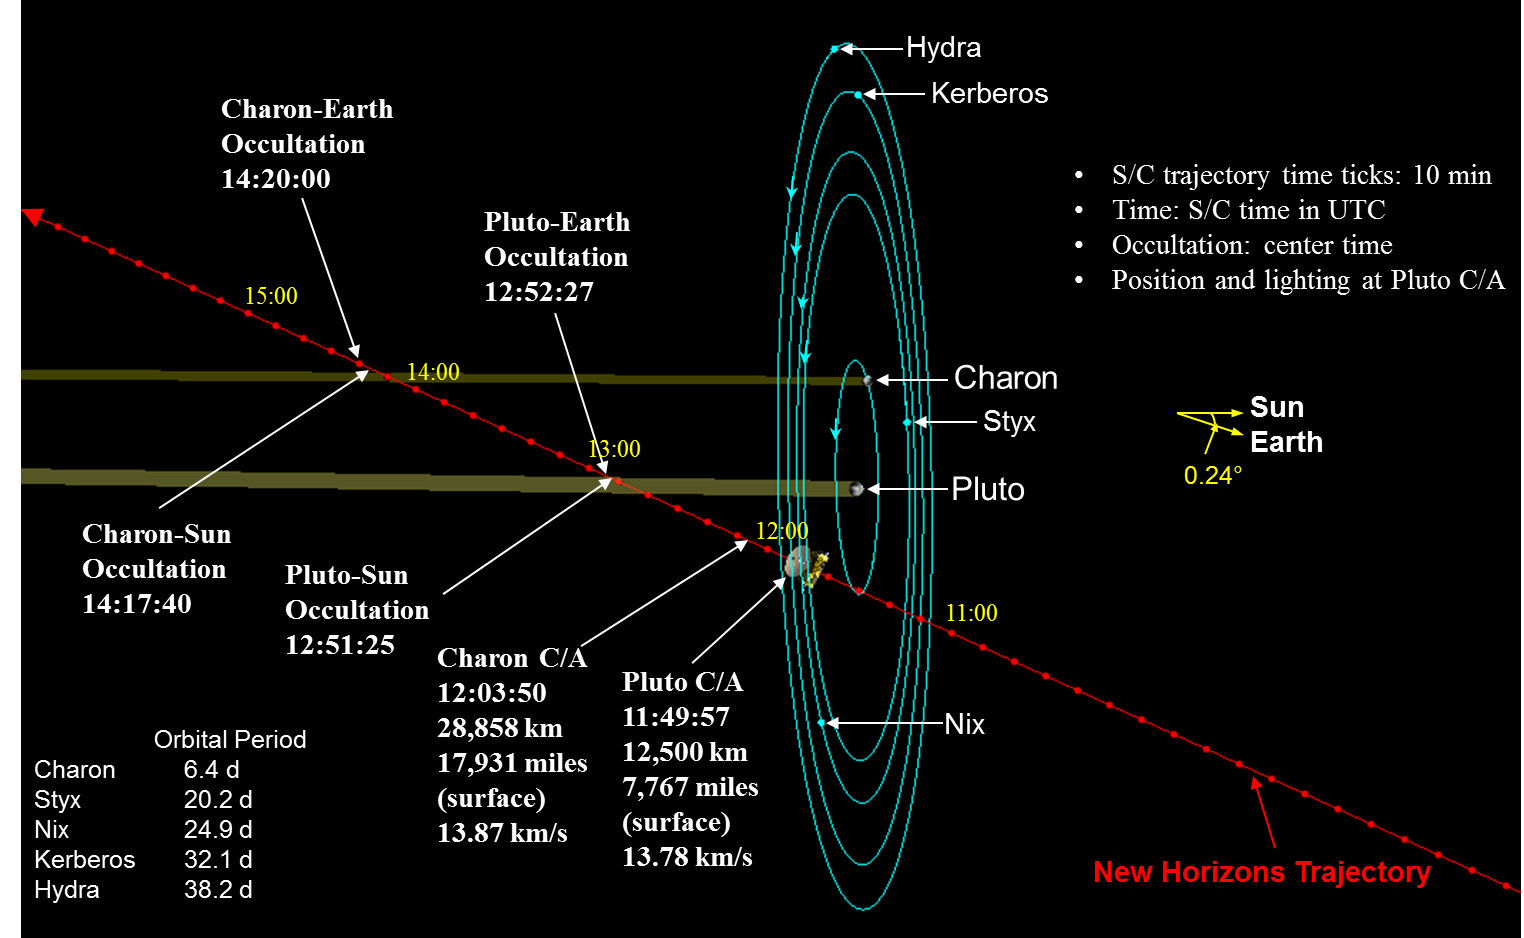 New Horizons The Path To Pluto And Beyond Cassini Mission Saturn Diagram Of Spacecraft Nh Timeline Encounter Trajectory